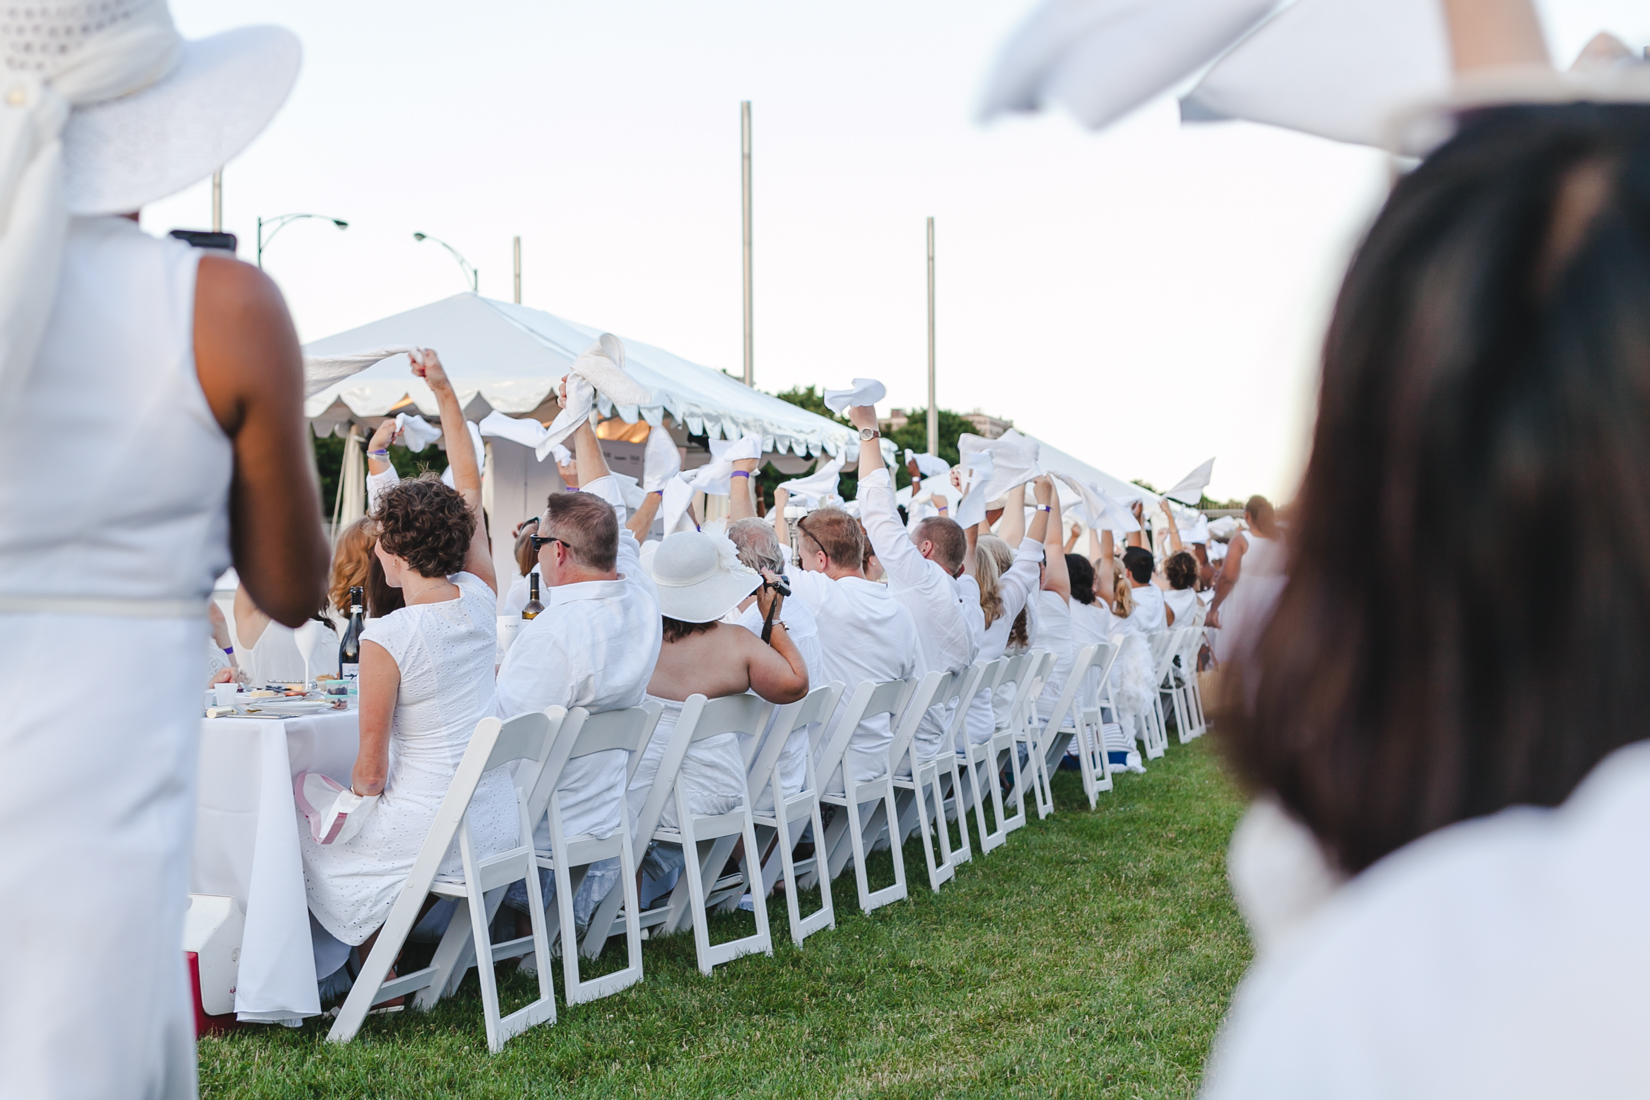 Yana Puaca from NoMad Luxuries Birthday Celebrations Chicago in White Event